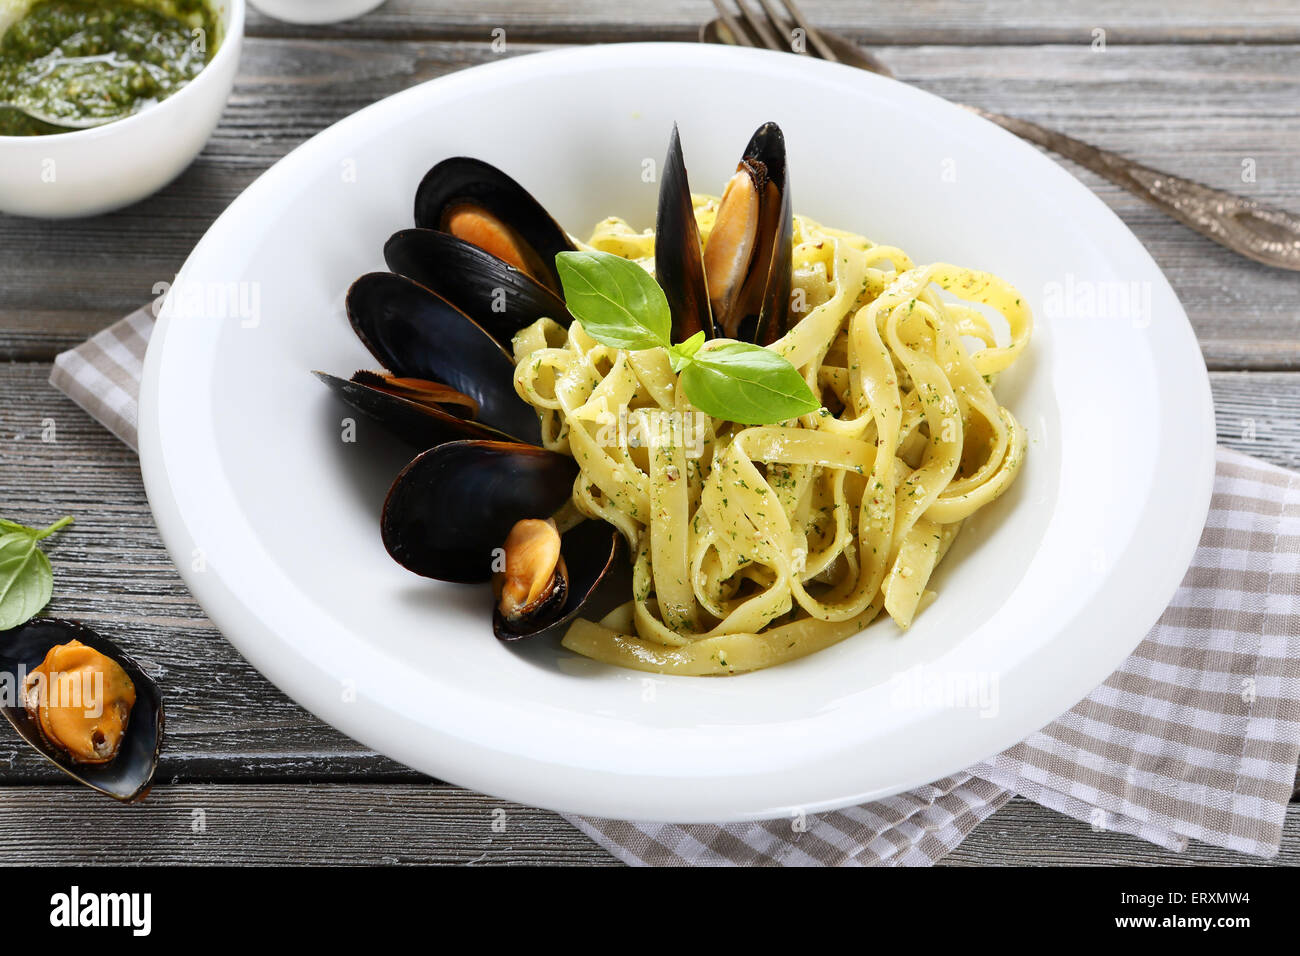 Pasta with fresh seafood, food - Stock Image